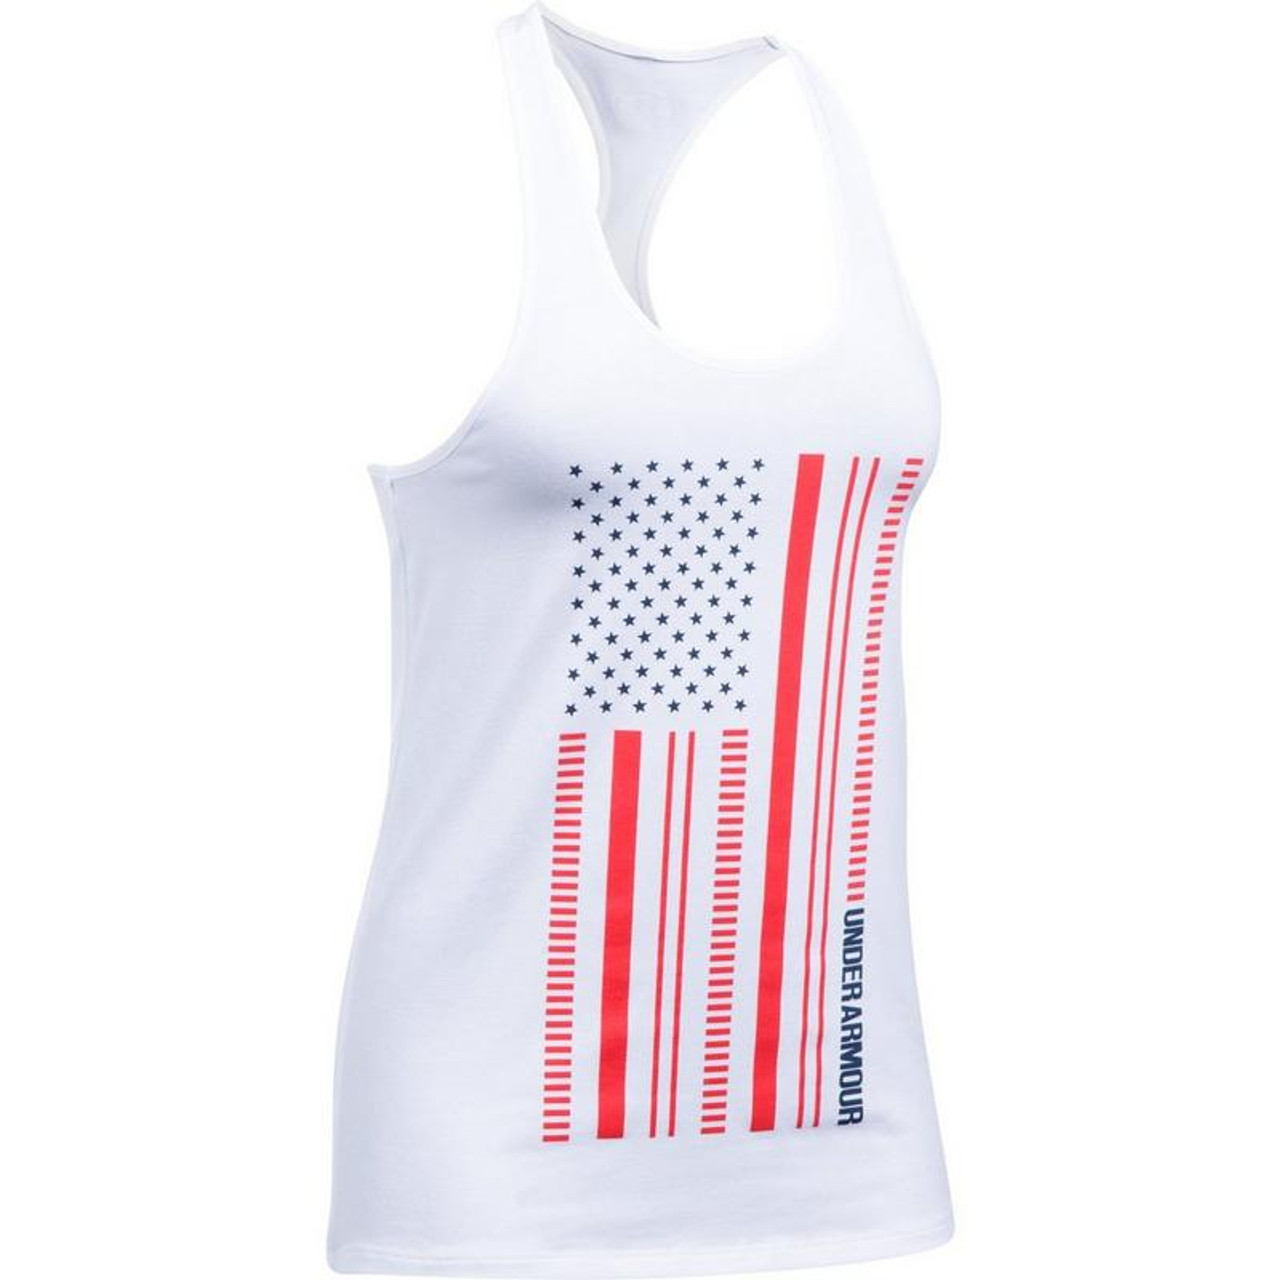 9bdaf3f5 Women's Under Armour Americana Flag Tank Top - Black Mountain Supply